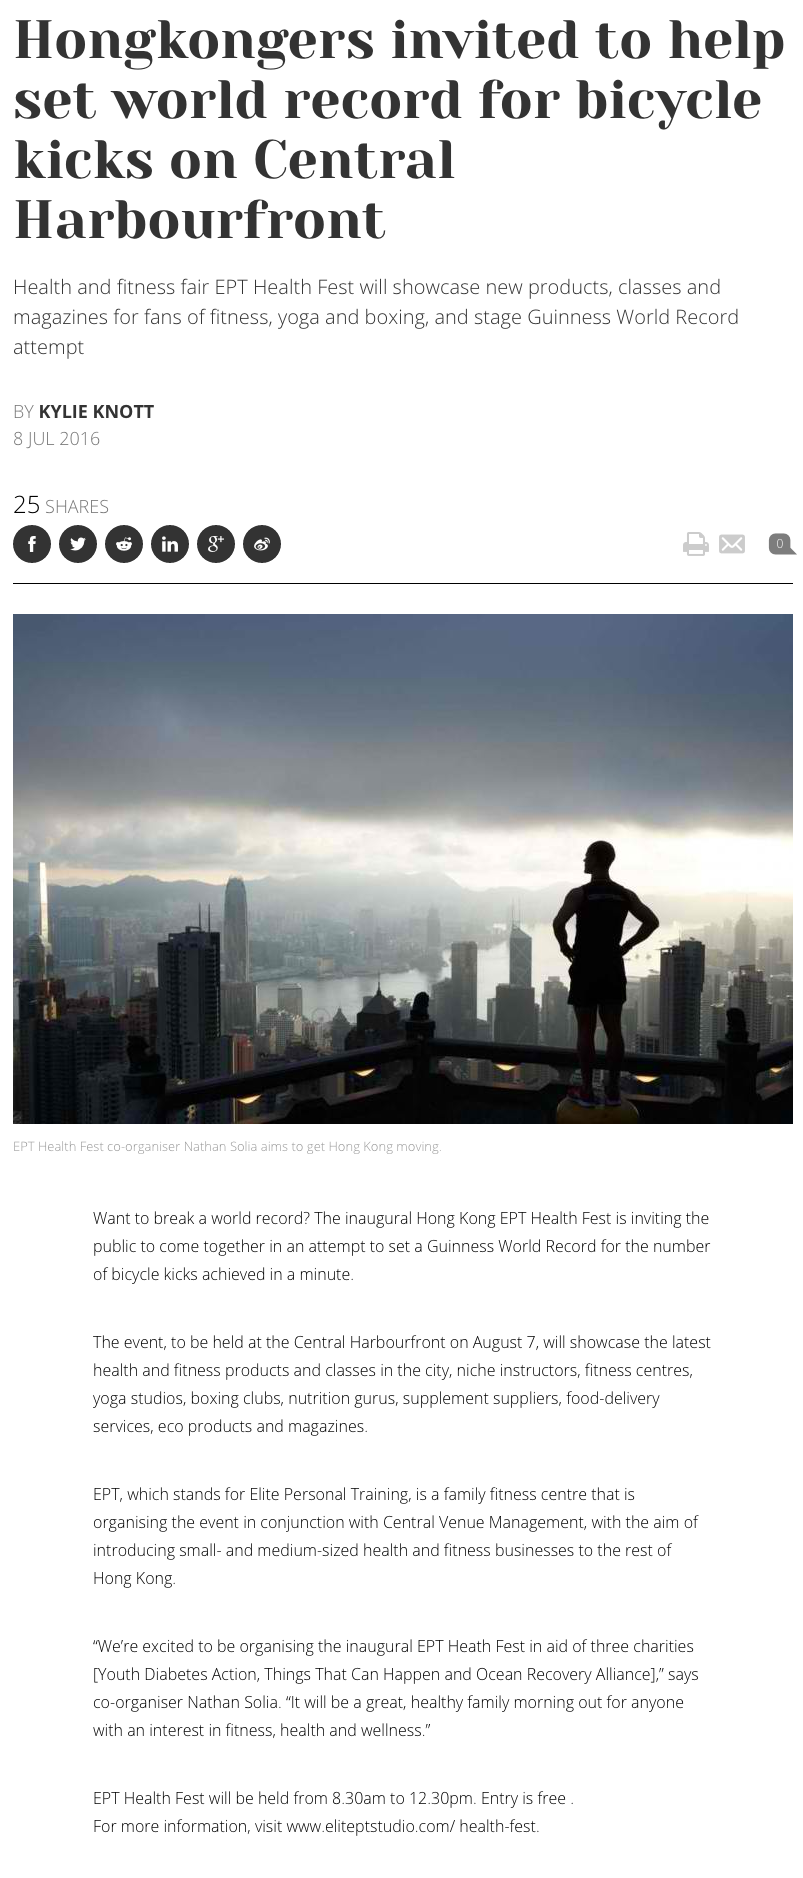 Hongkongers invited to help set world record for bicycle kicks on Central Harbourfront - SCMP Article on EPT Health Fest 2016